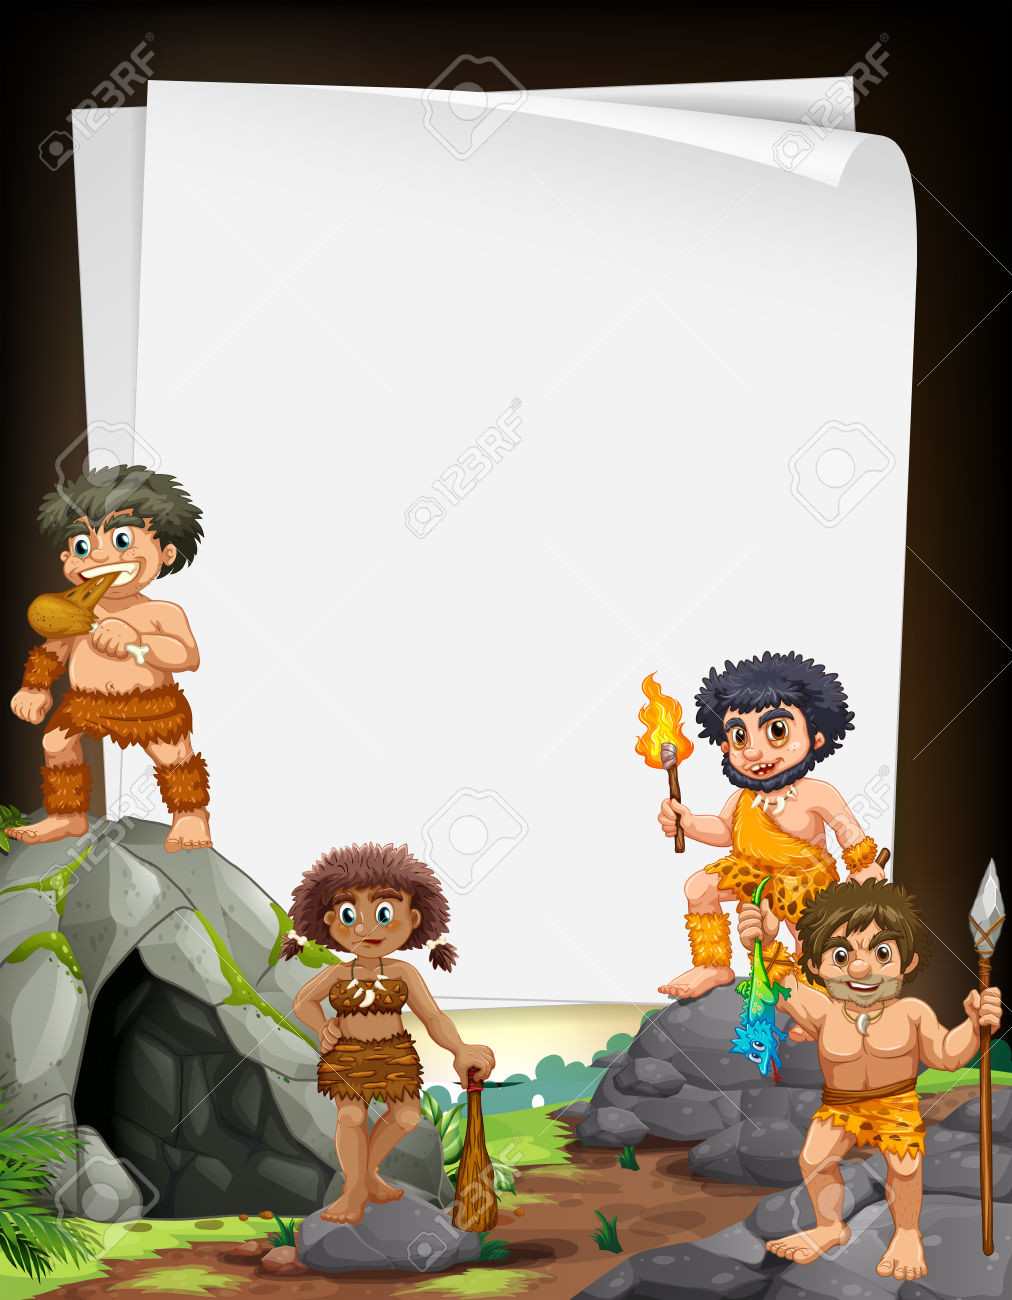 Border Design With Cavemen Living At The Cave Illustration Royalty.